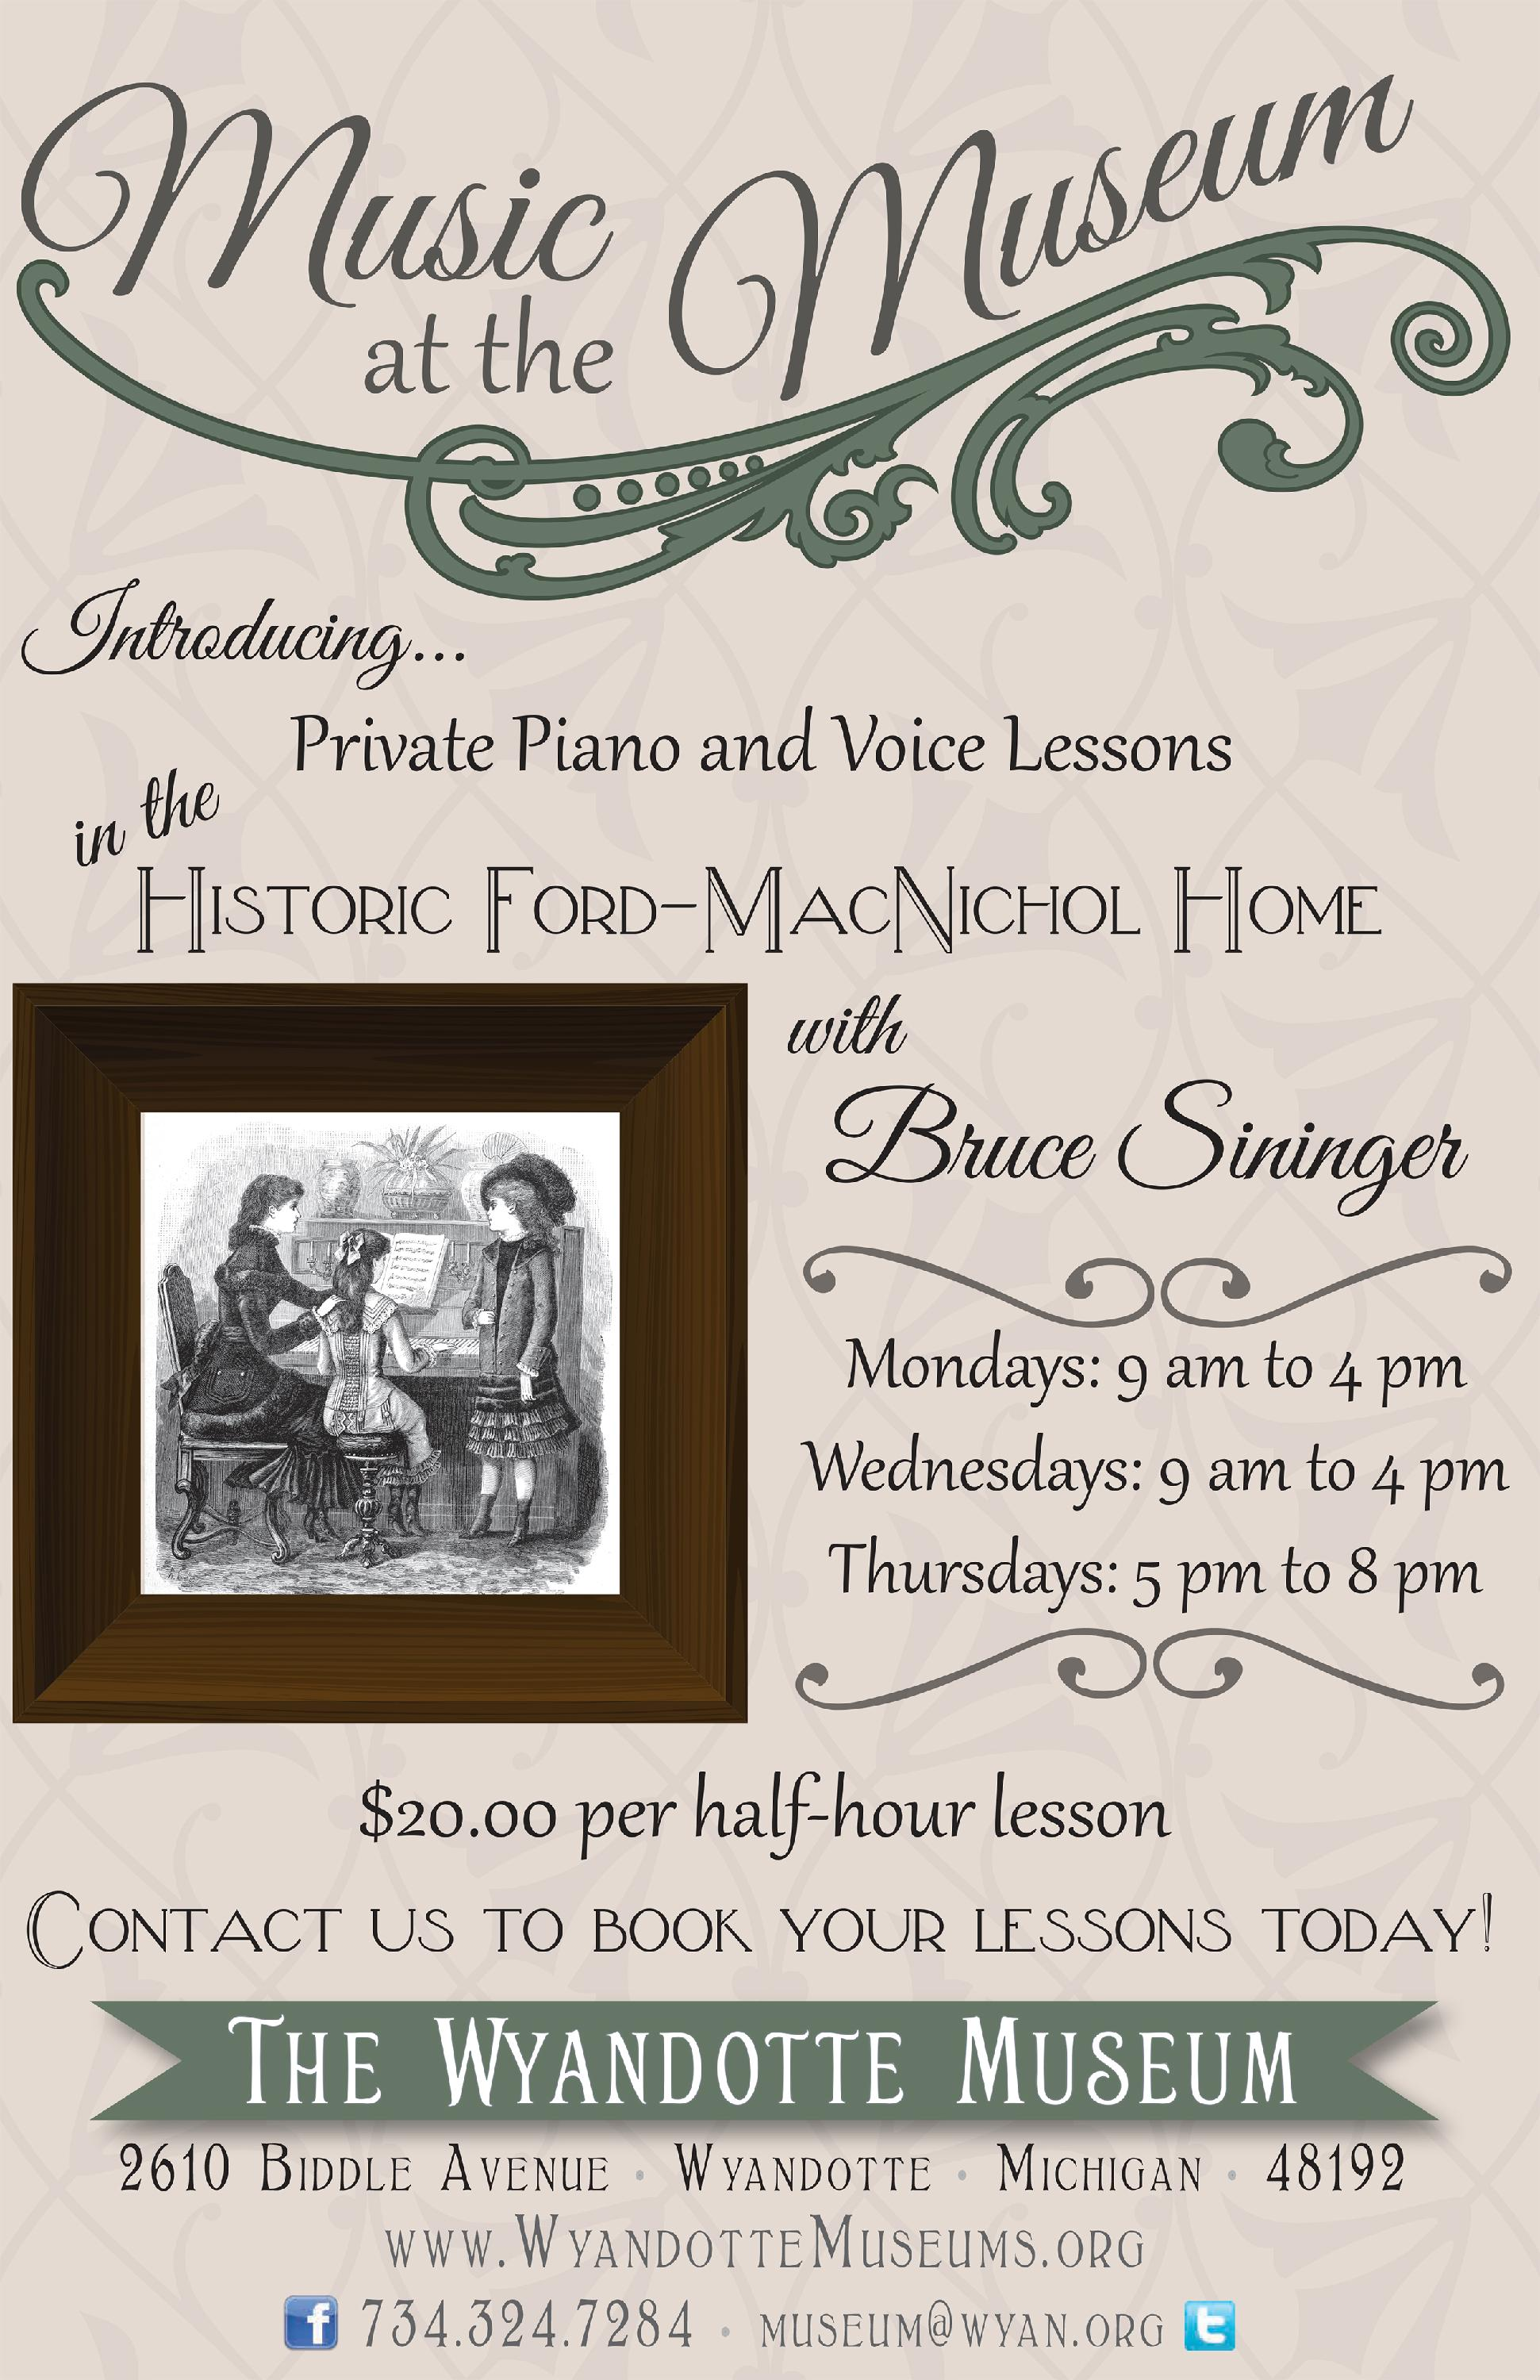 Wyandotte Museum News Brief - Music at the Museum